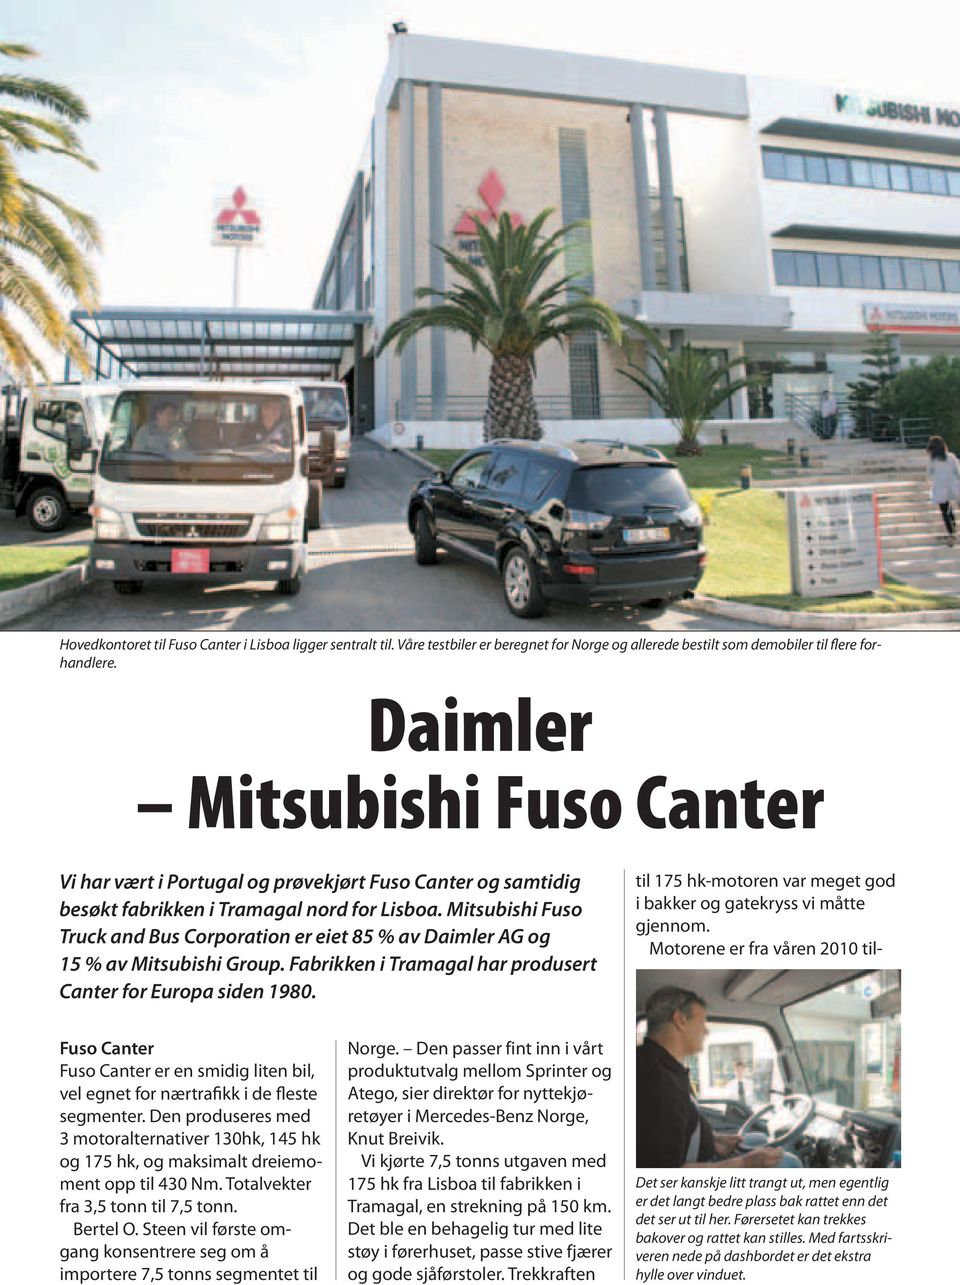 Mitsubishi Fuso Truck and Bus Corporation er eiet 85 % av Daimler AG og 15 % av Mitsubishi Group. Fabrikken i Tramagal har produsert Canter for Europa siden 1980.